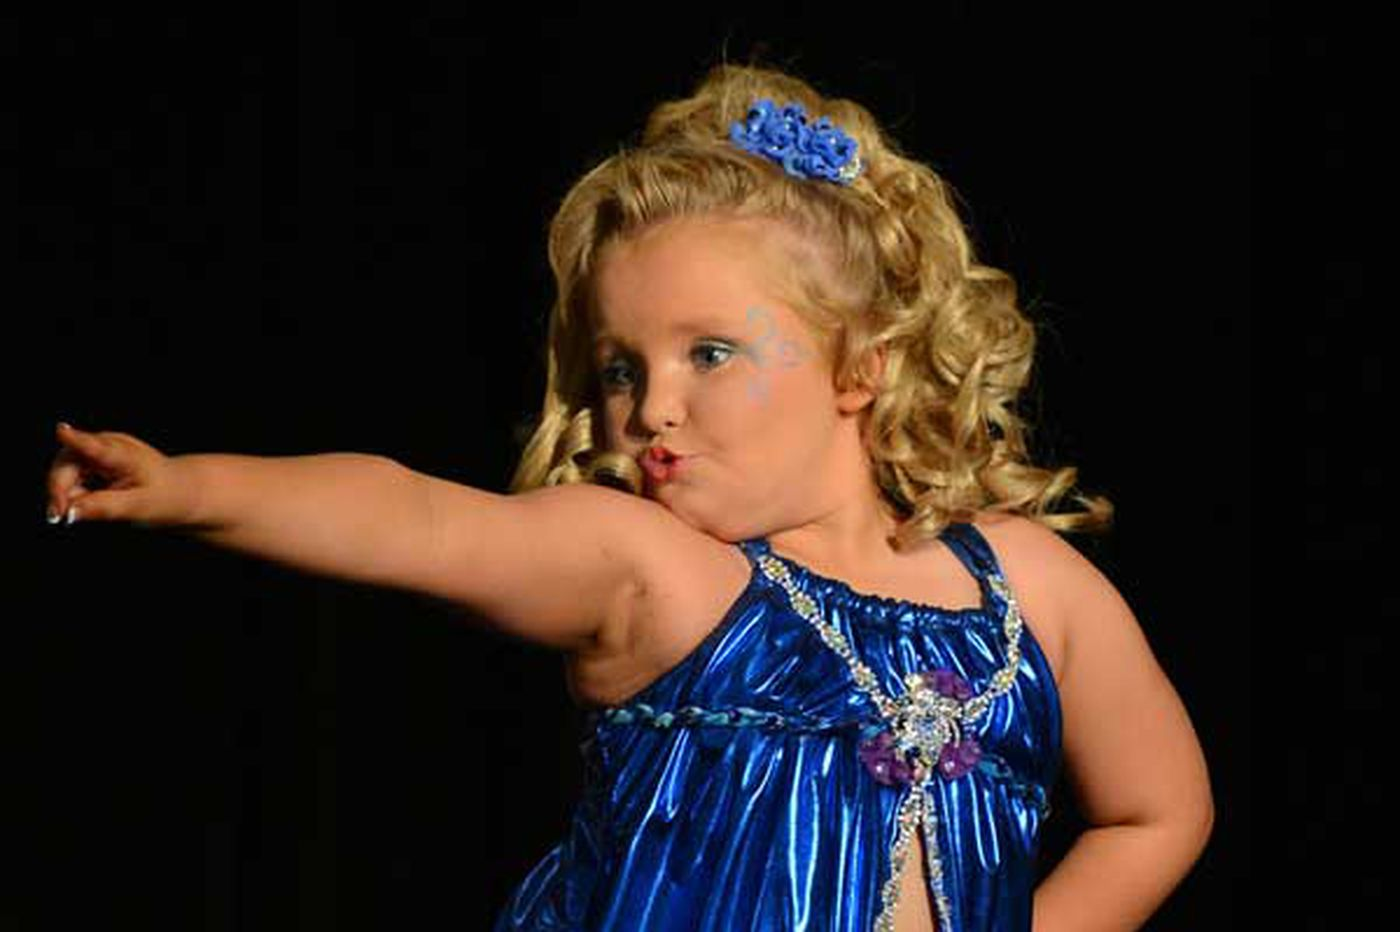 Tattle: Honey Boo Boo picked by Barbara Walters for one of the most fascinating people of 2012